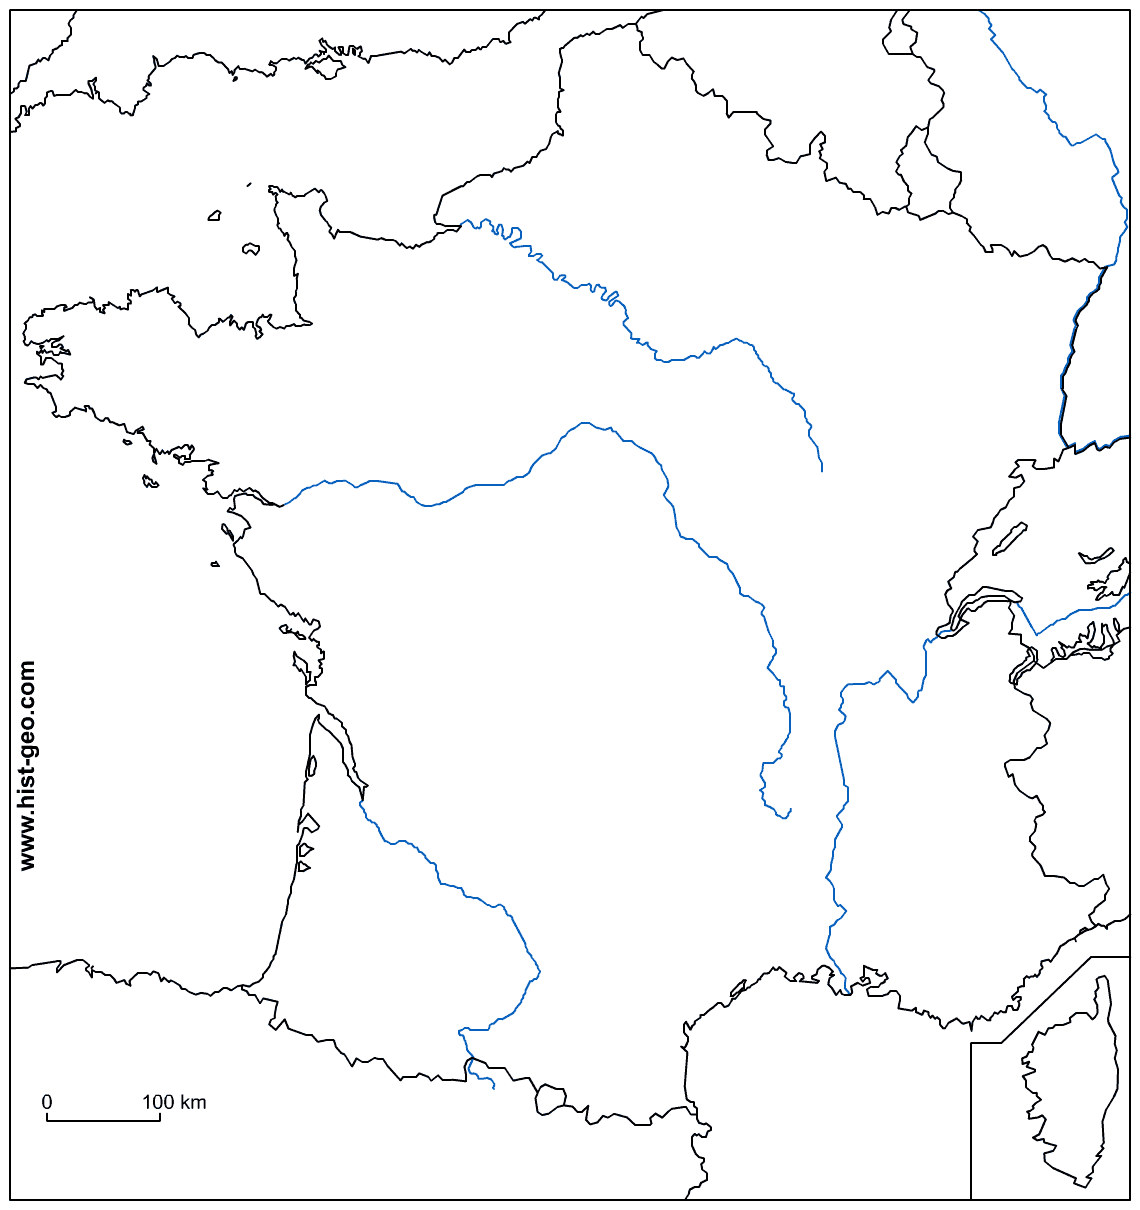 Blank Physical Map Of Europe With Rivers And Mountains  Printable - Map of us including rivers and mountains